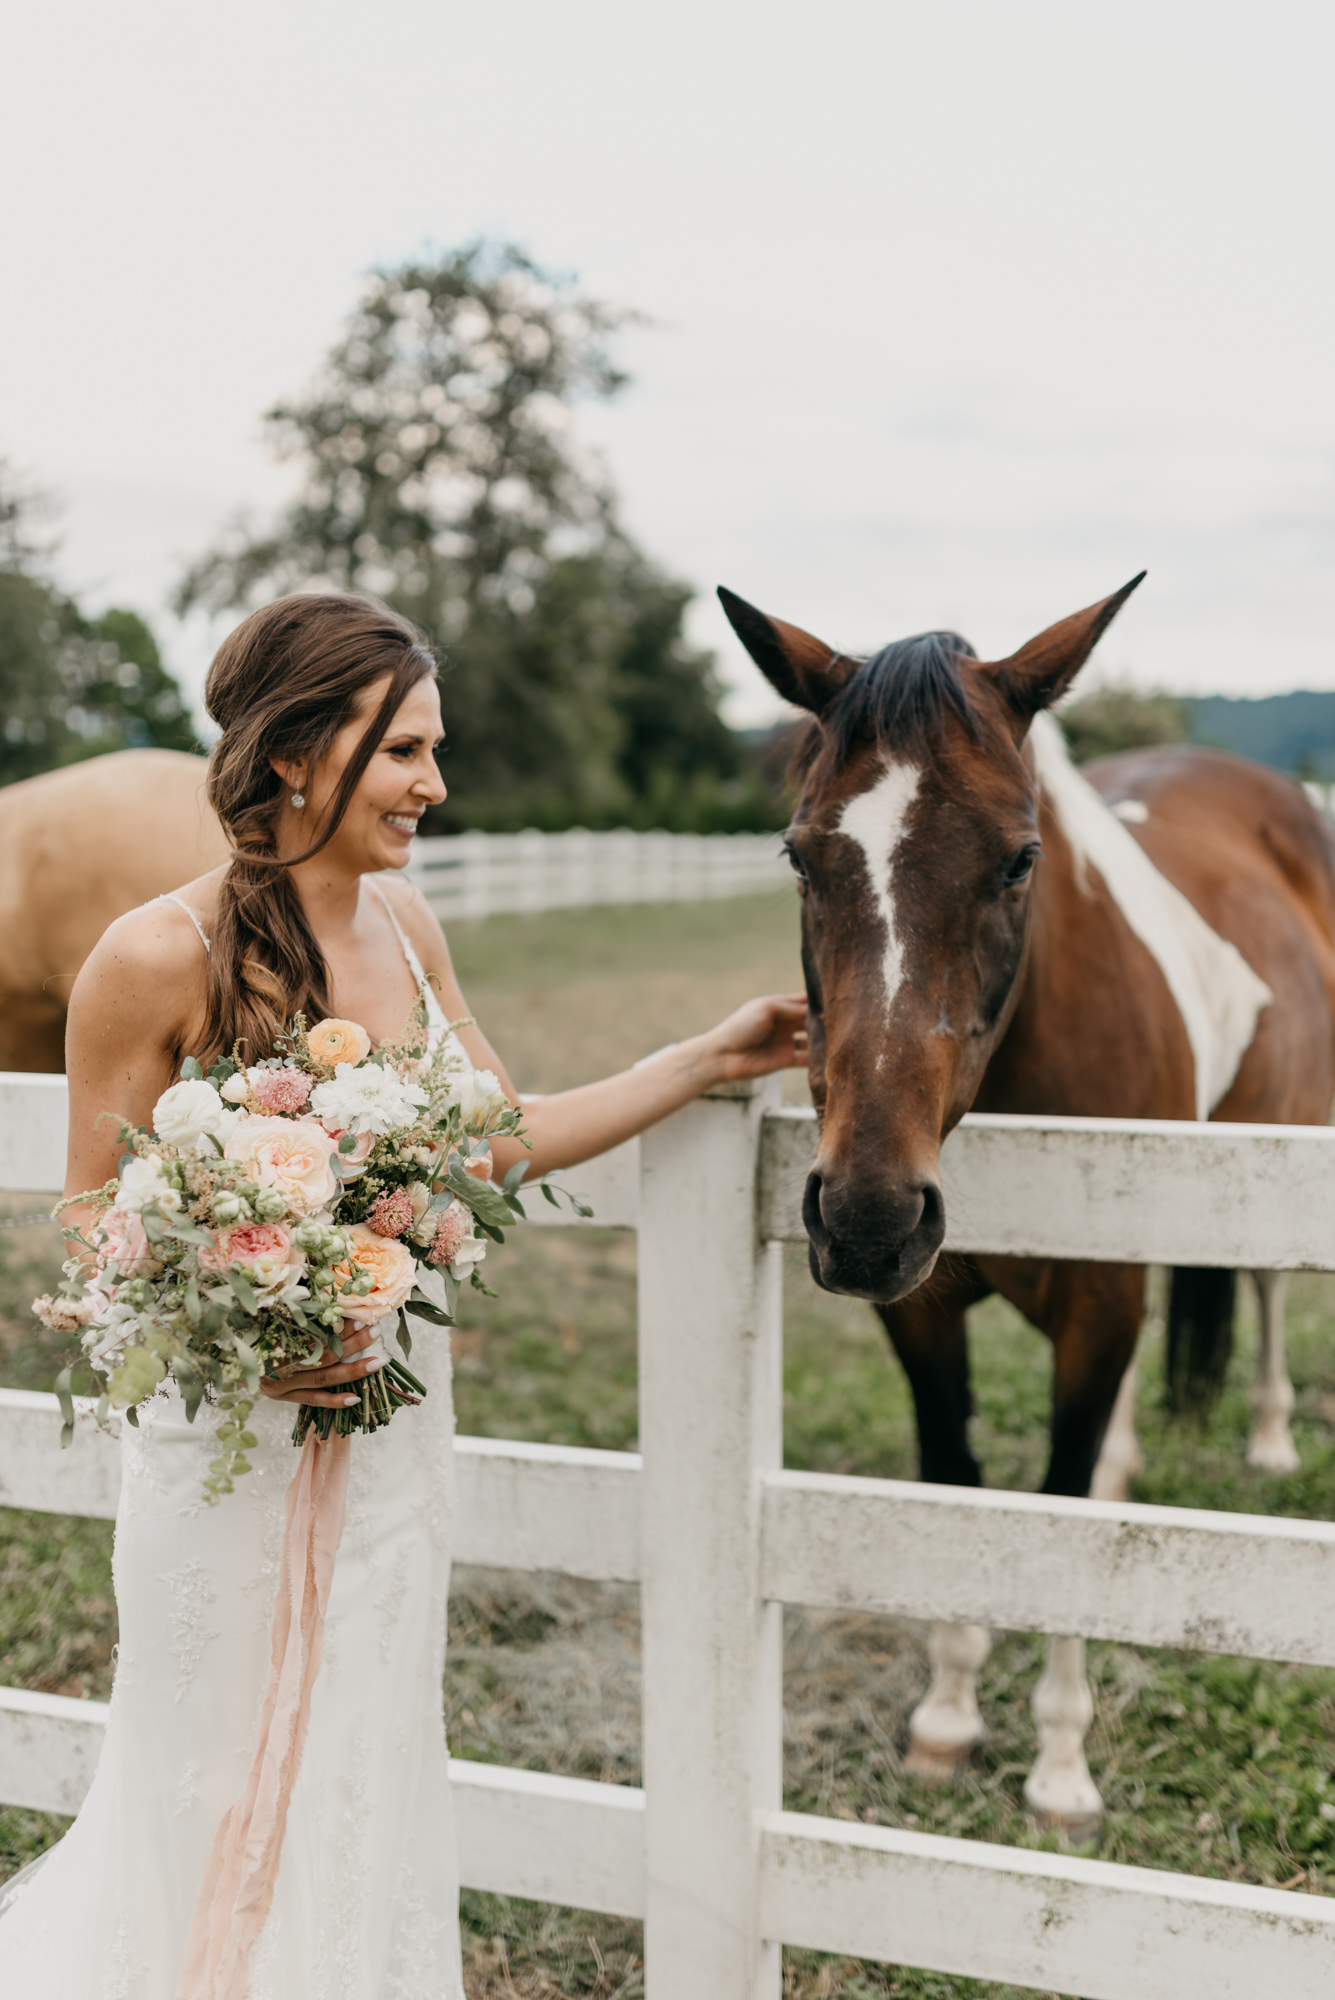 186-barn-kestrel-portland-northwest-horse-sunset-wedding.jpg